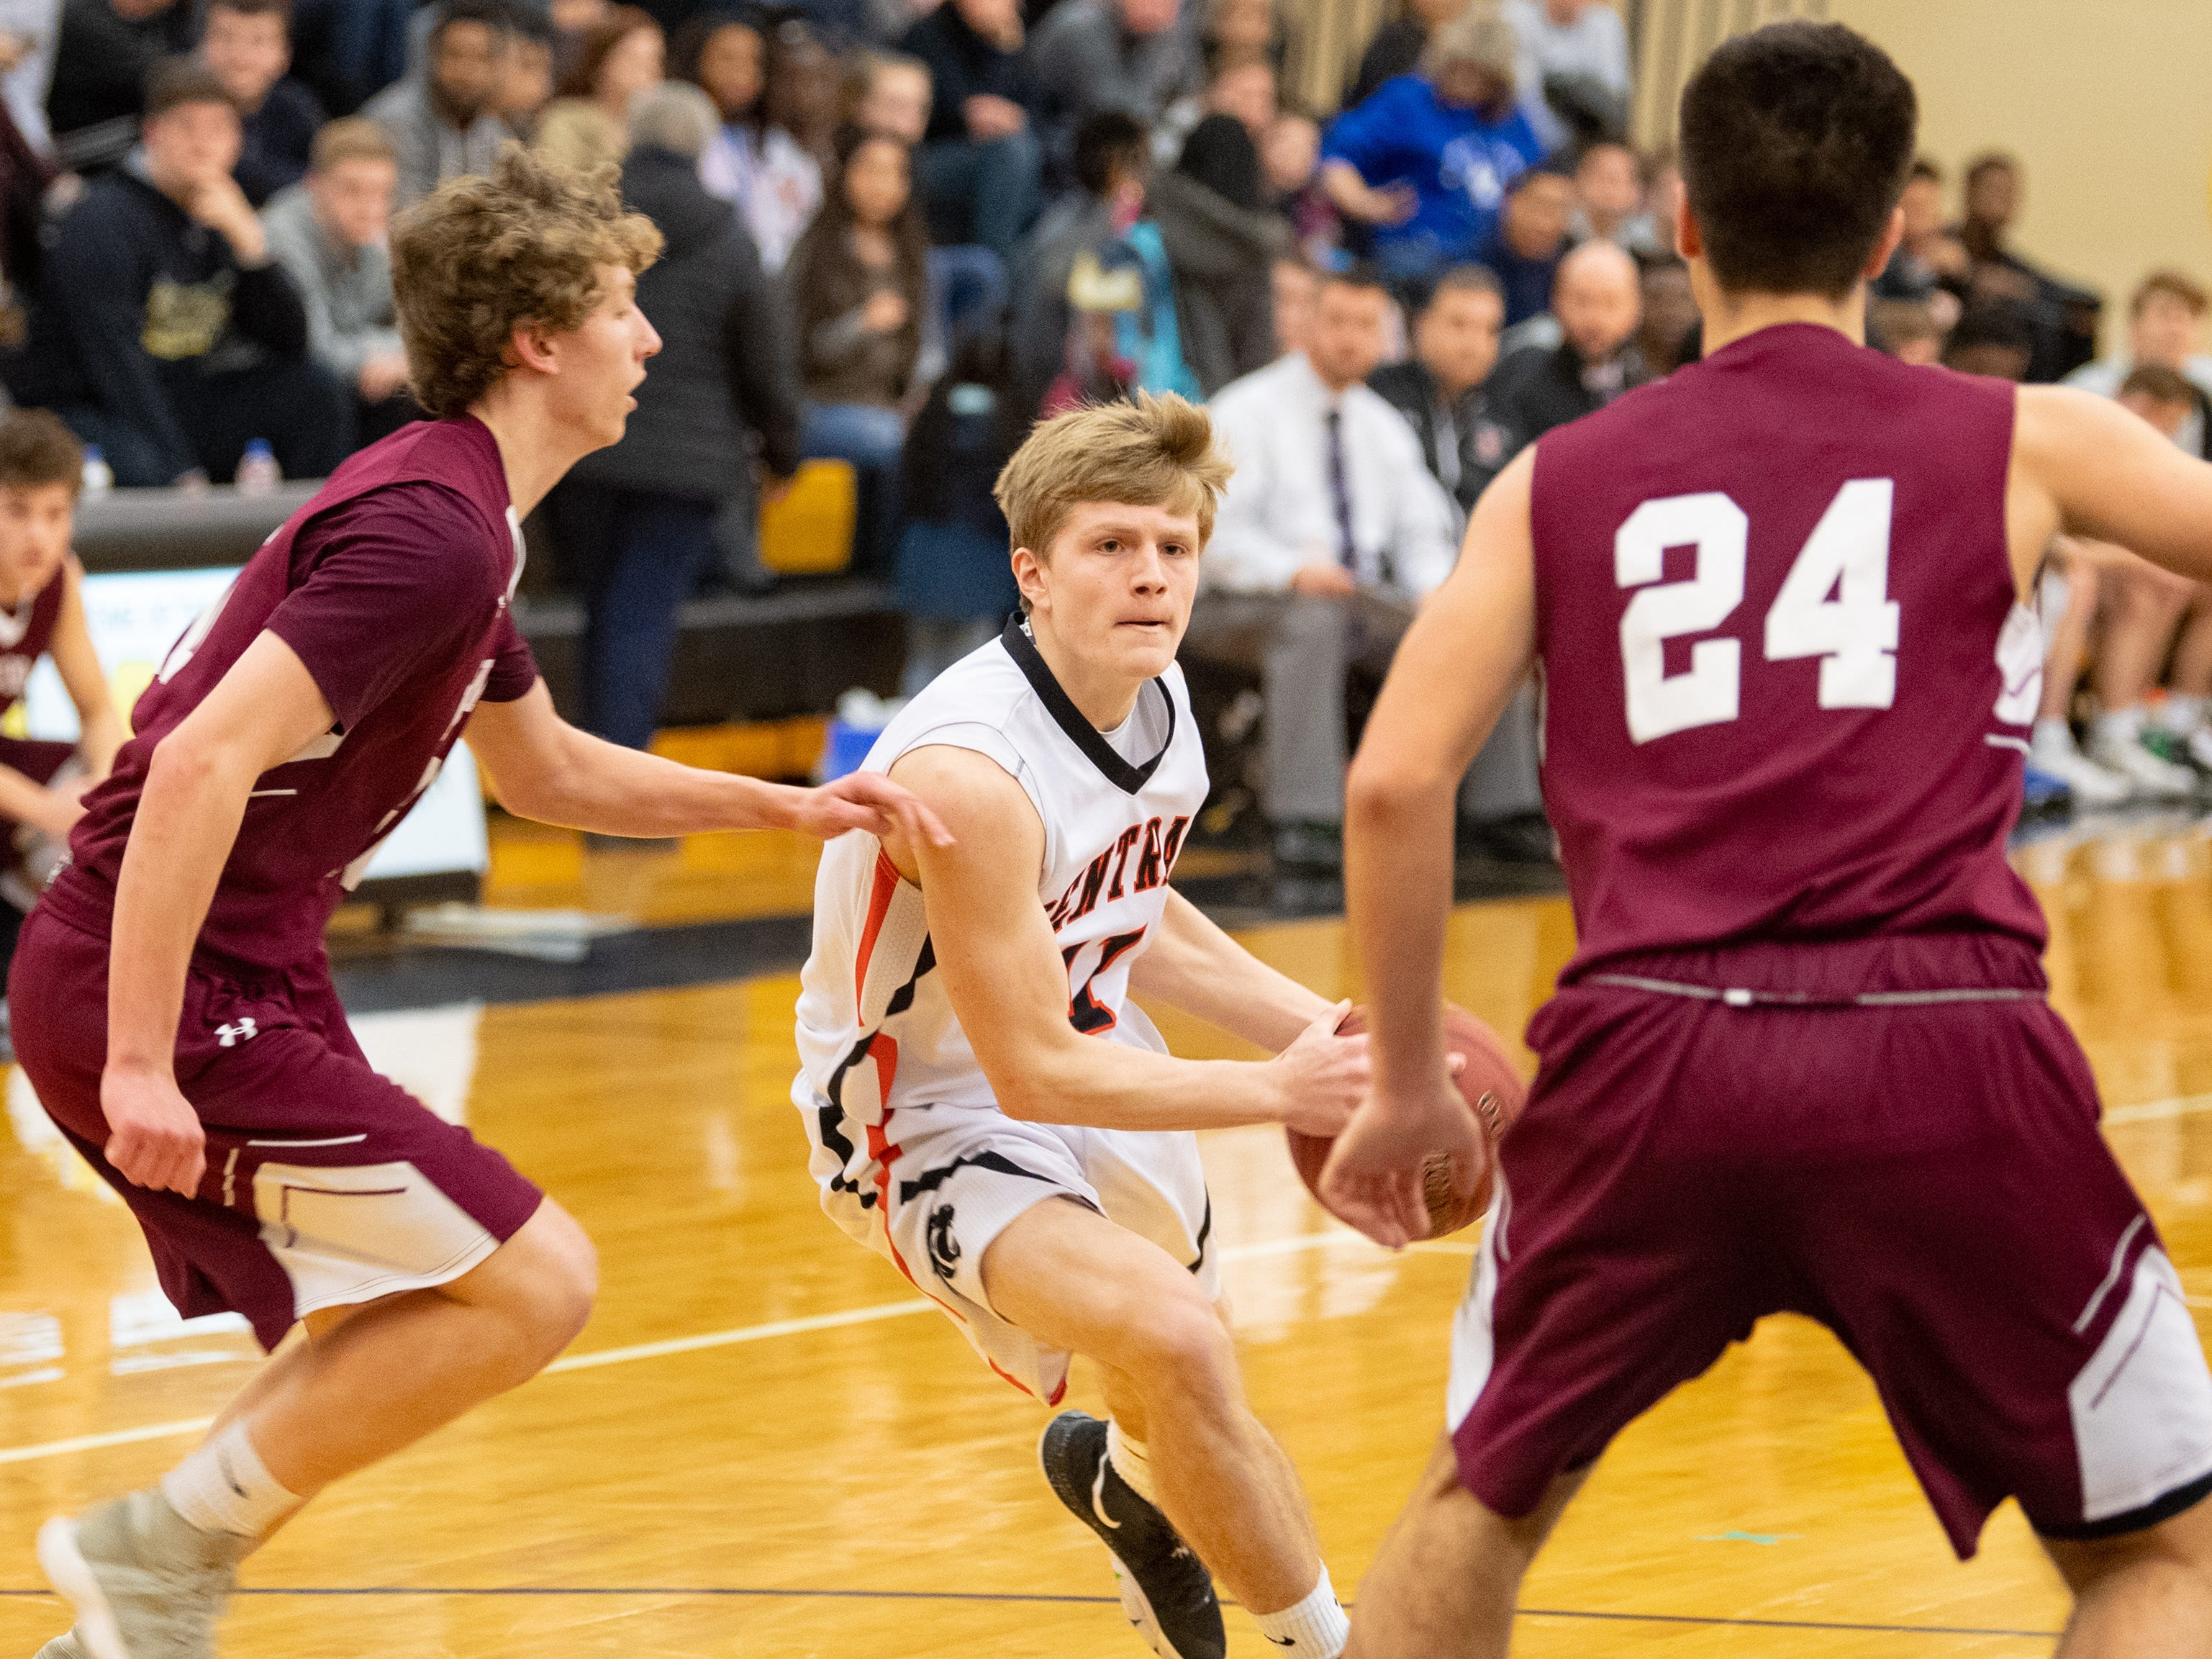 Nolan Hubbs (11) drives through the opening in the defense during the YAIAA boys' basketball semifinals between Central York and New Oxford, Wednesday, February 13, 2019 at Red Lion Area High School. The Colonials defeated the Panthers 43 to 41.